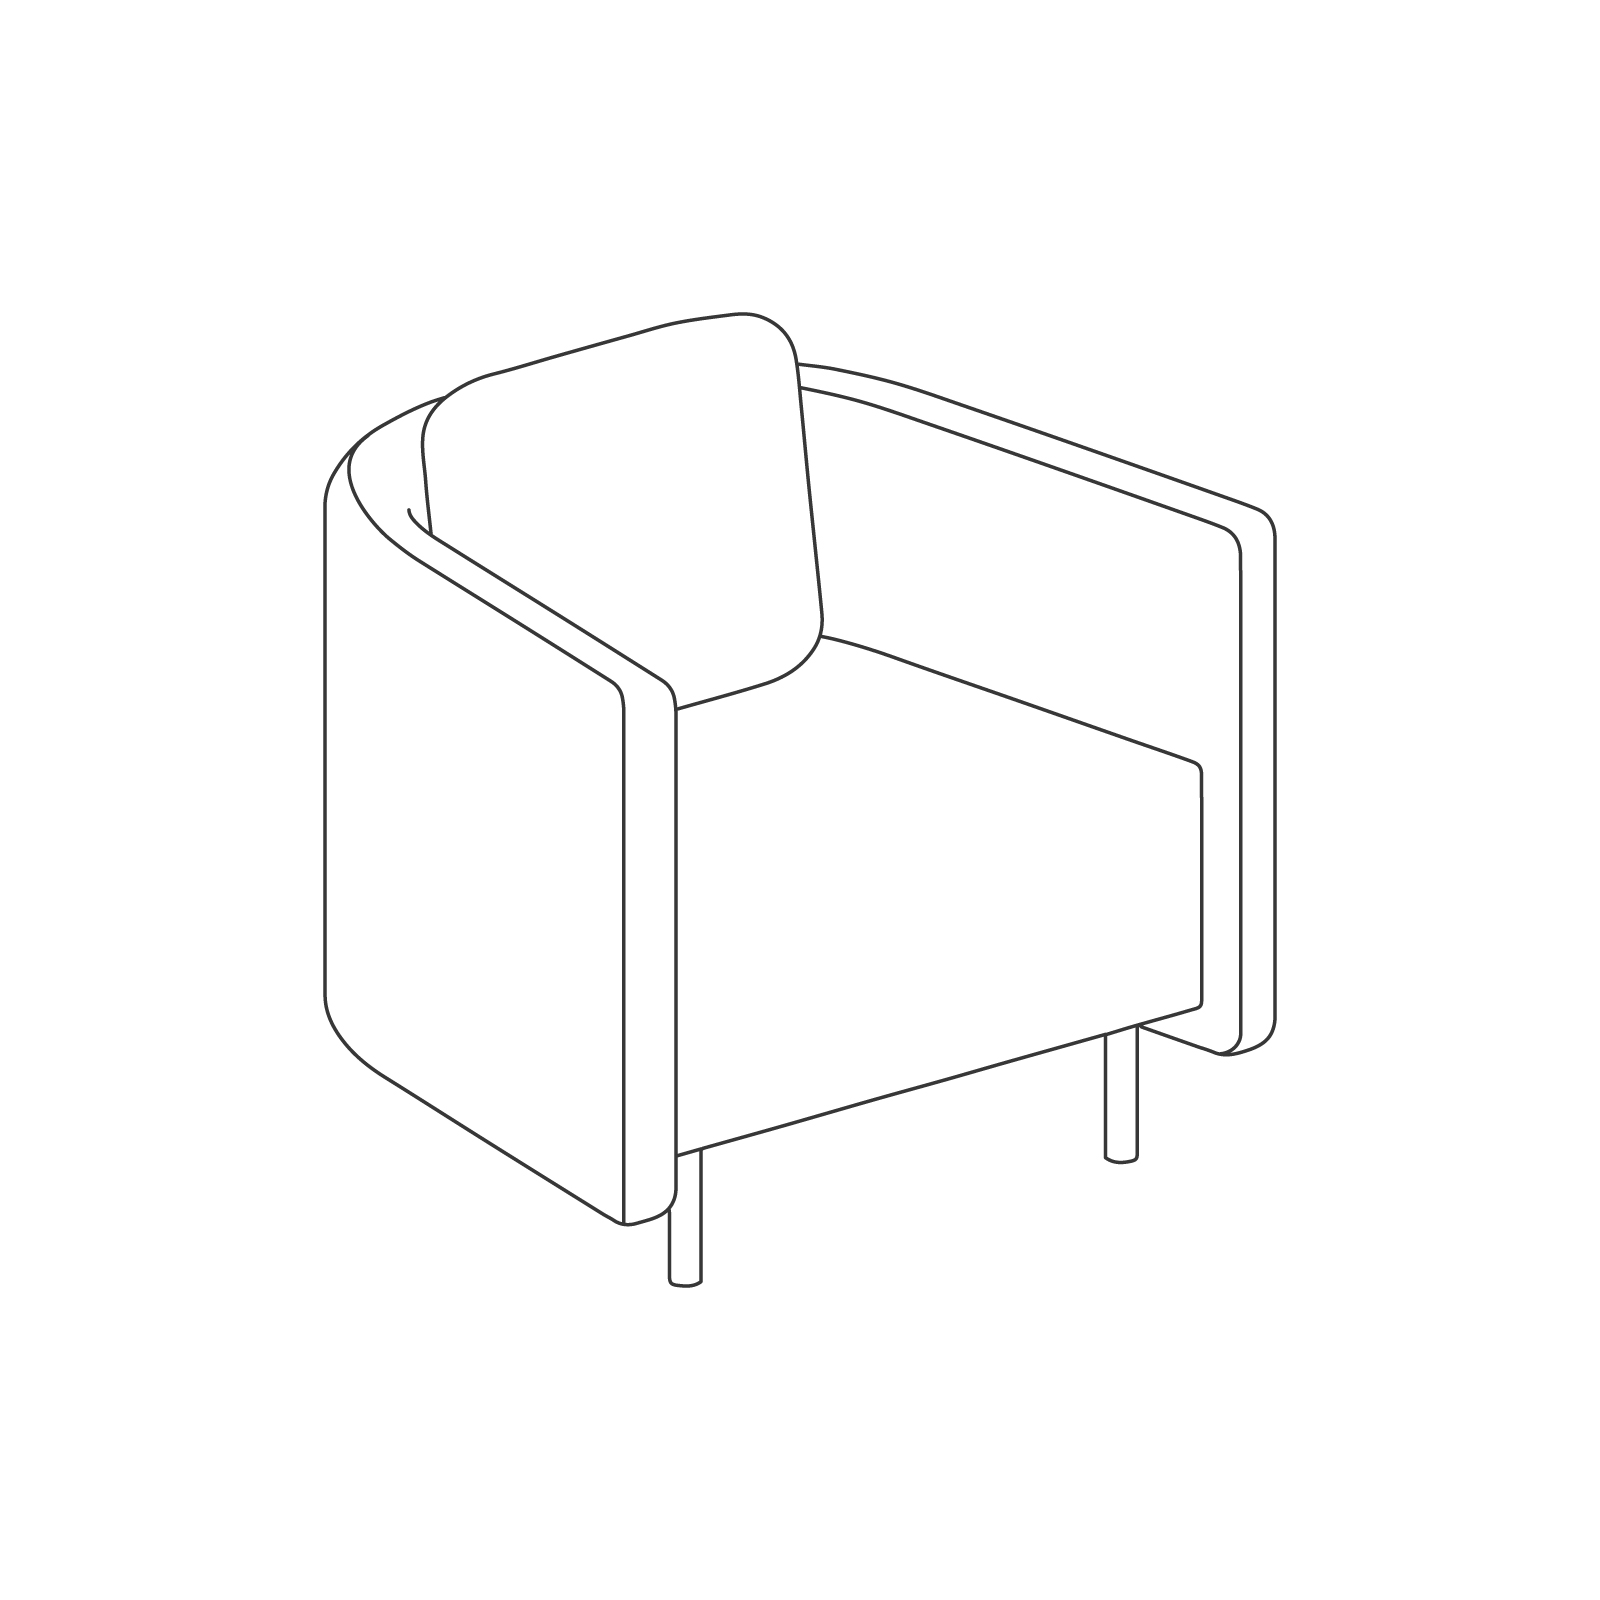 A line drawing of Cloud Plain Armchair.